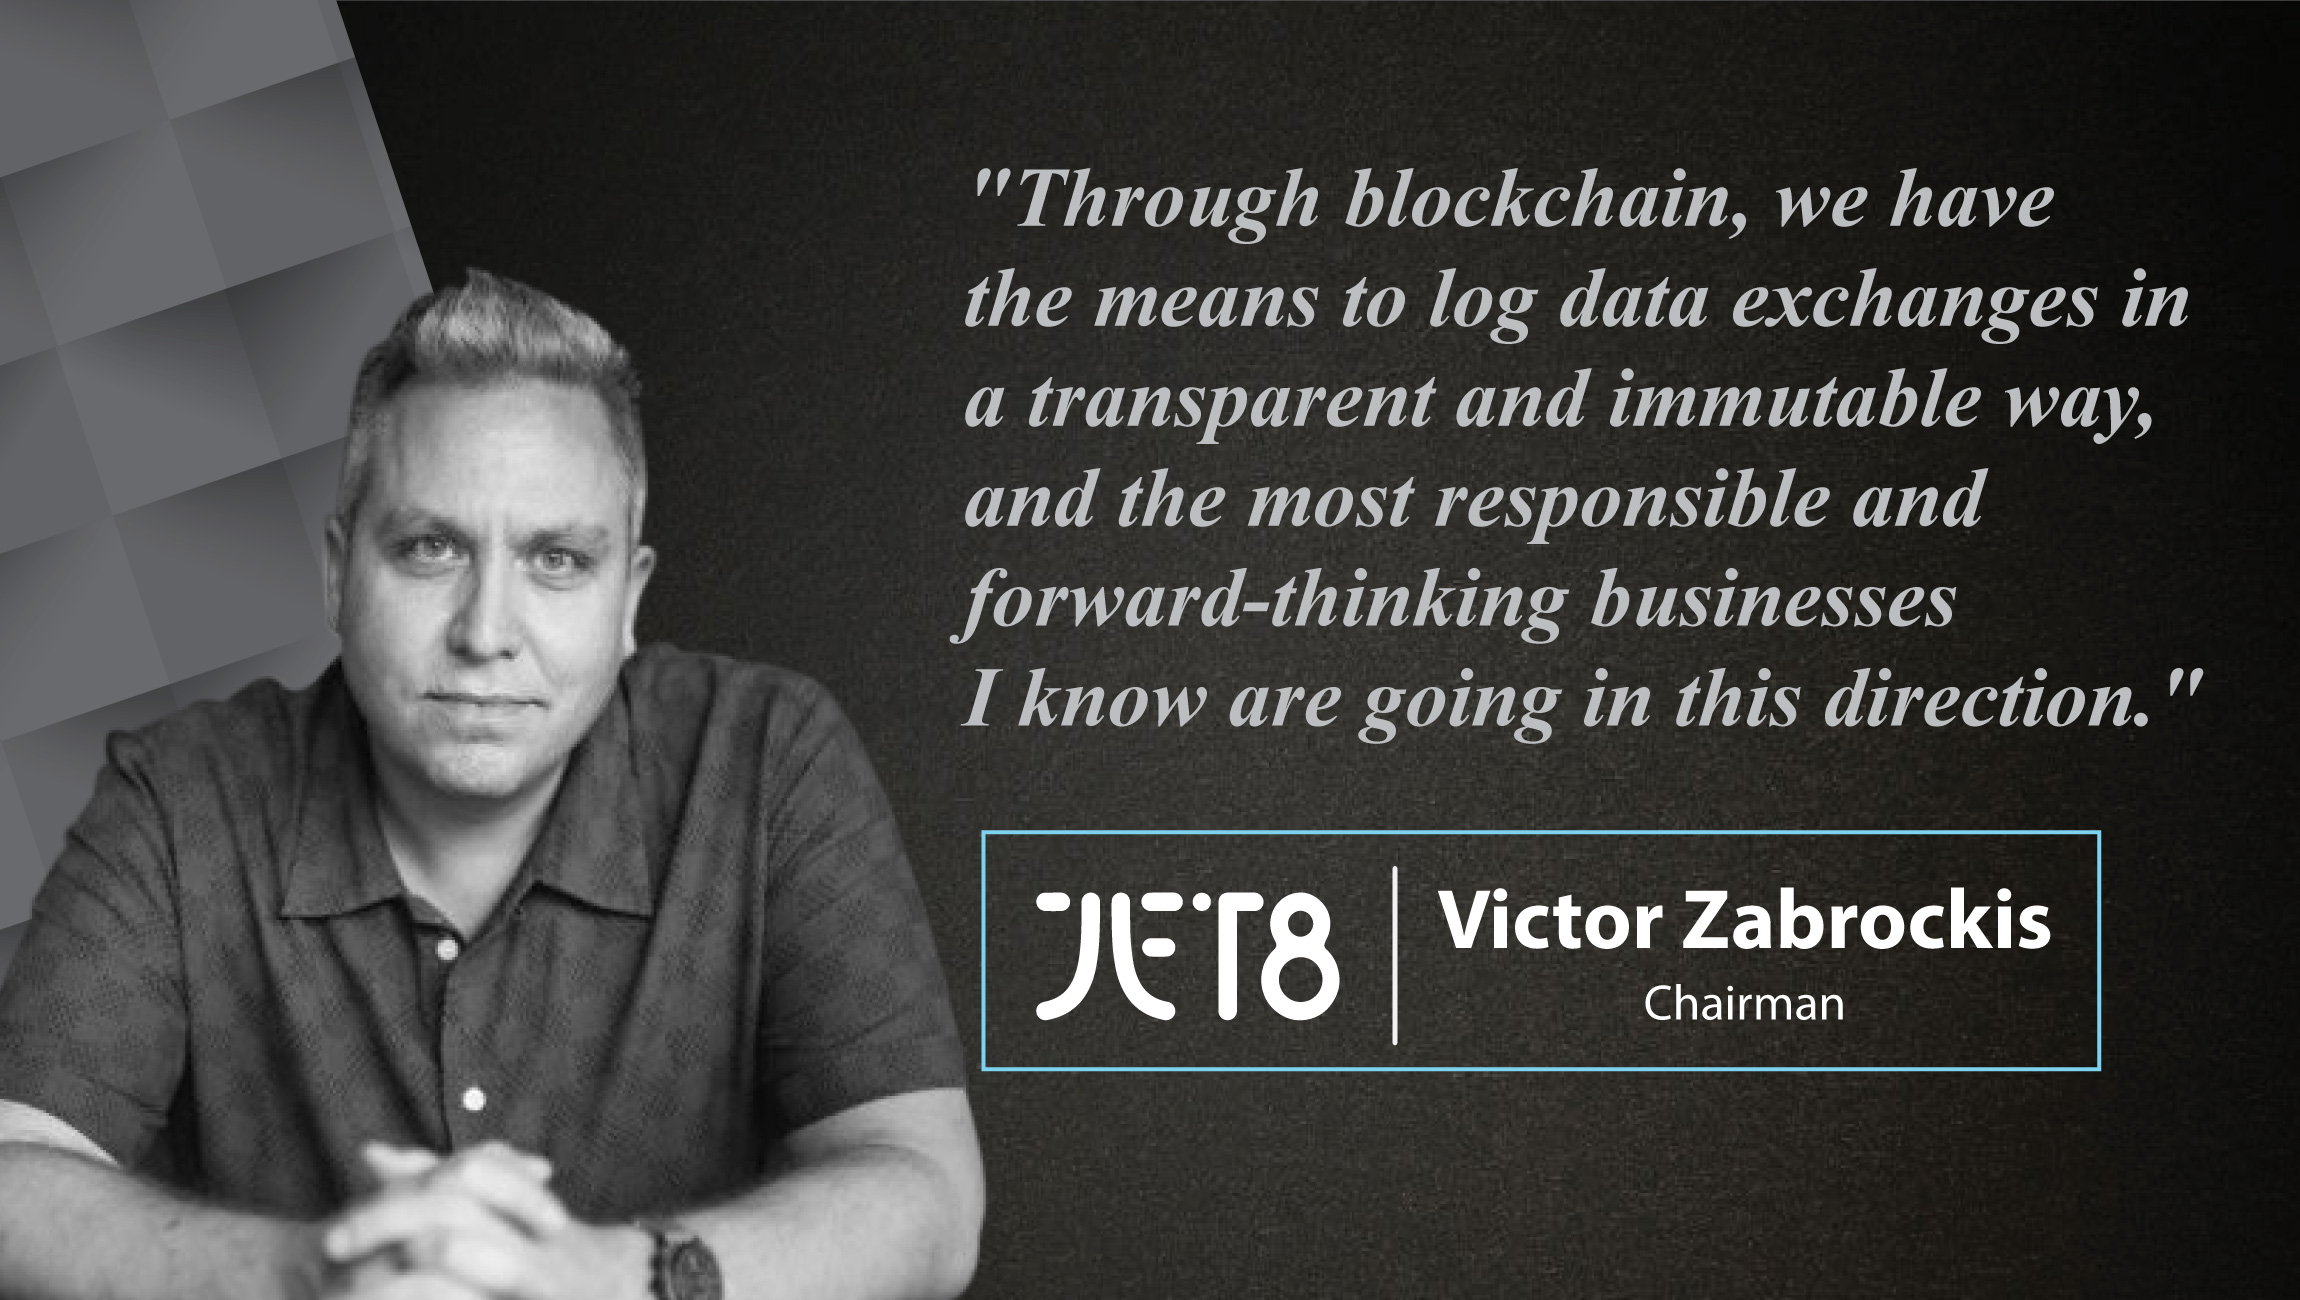 Interview with Victor Zabrockis, Chairman at JET8 Foundation-cue card